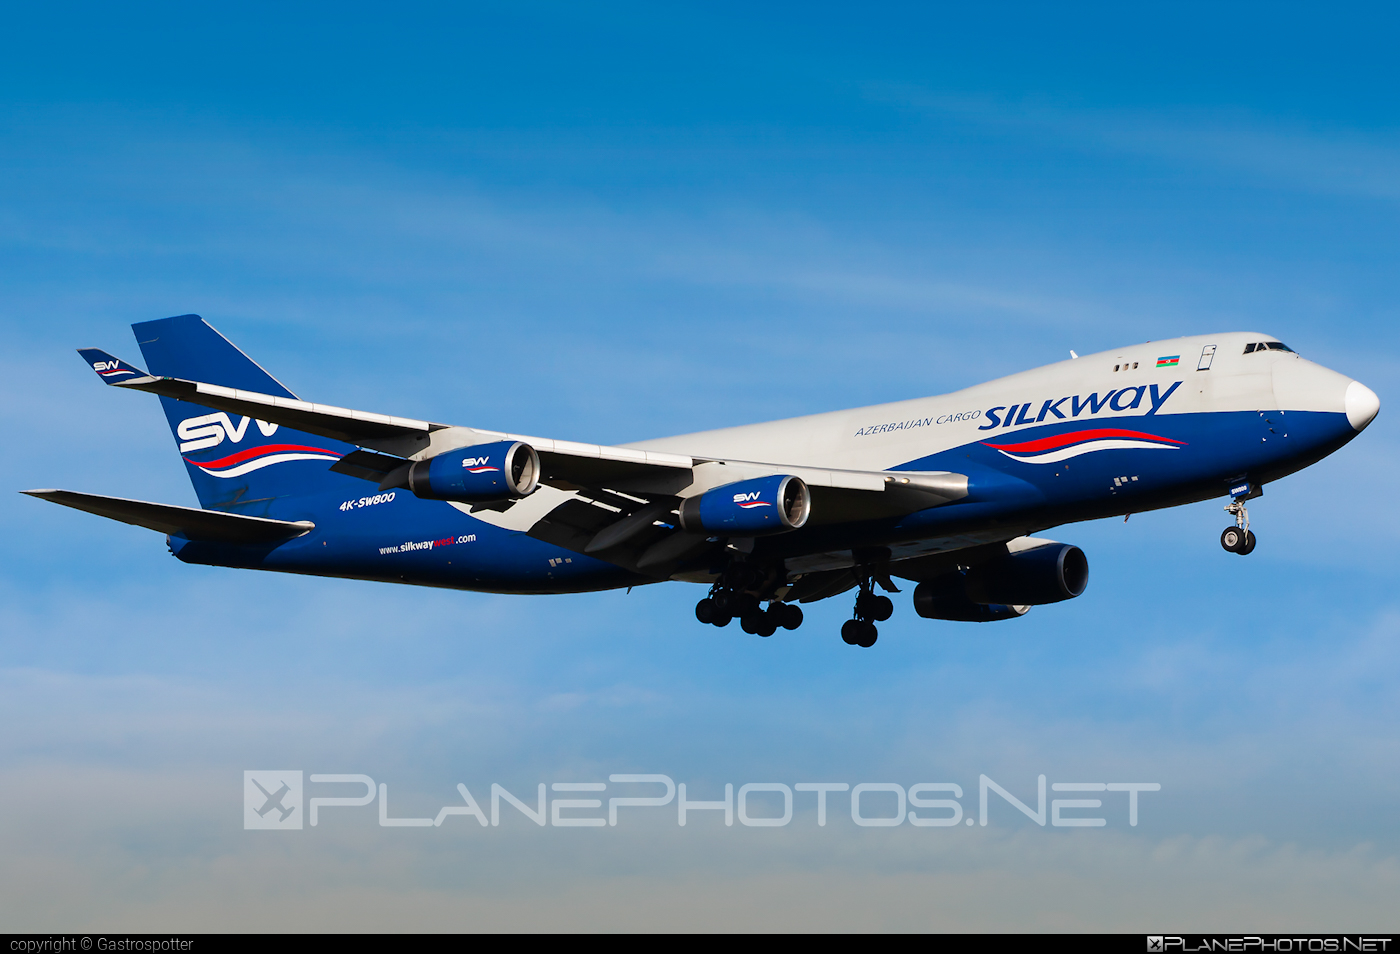 Boeing 747-400F - 4K-SW800 operated by Silk Way West Airlines #b747 #boeing #boeing747 #jumbo #silkwayairlines #silkwaywestairlines